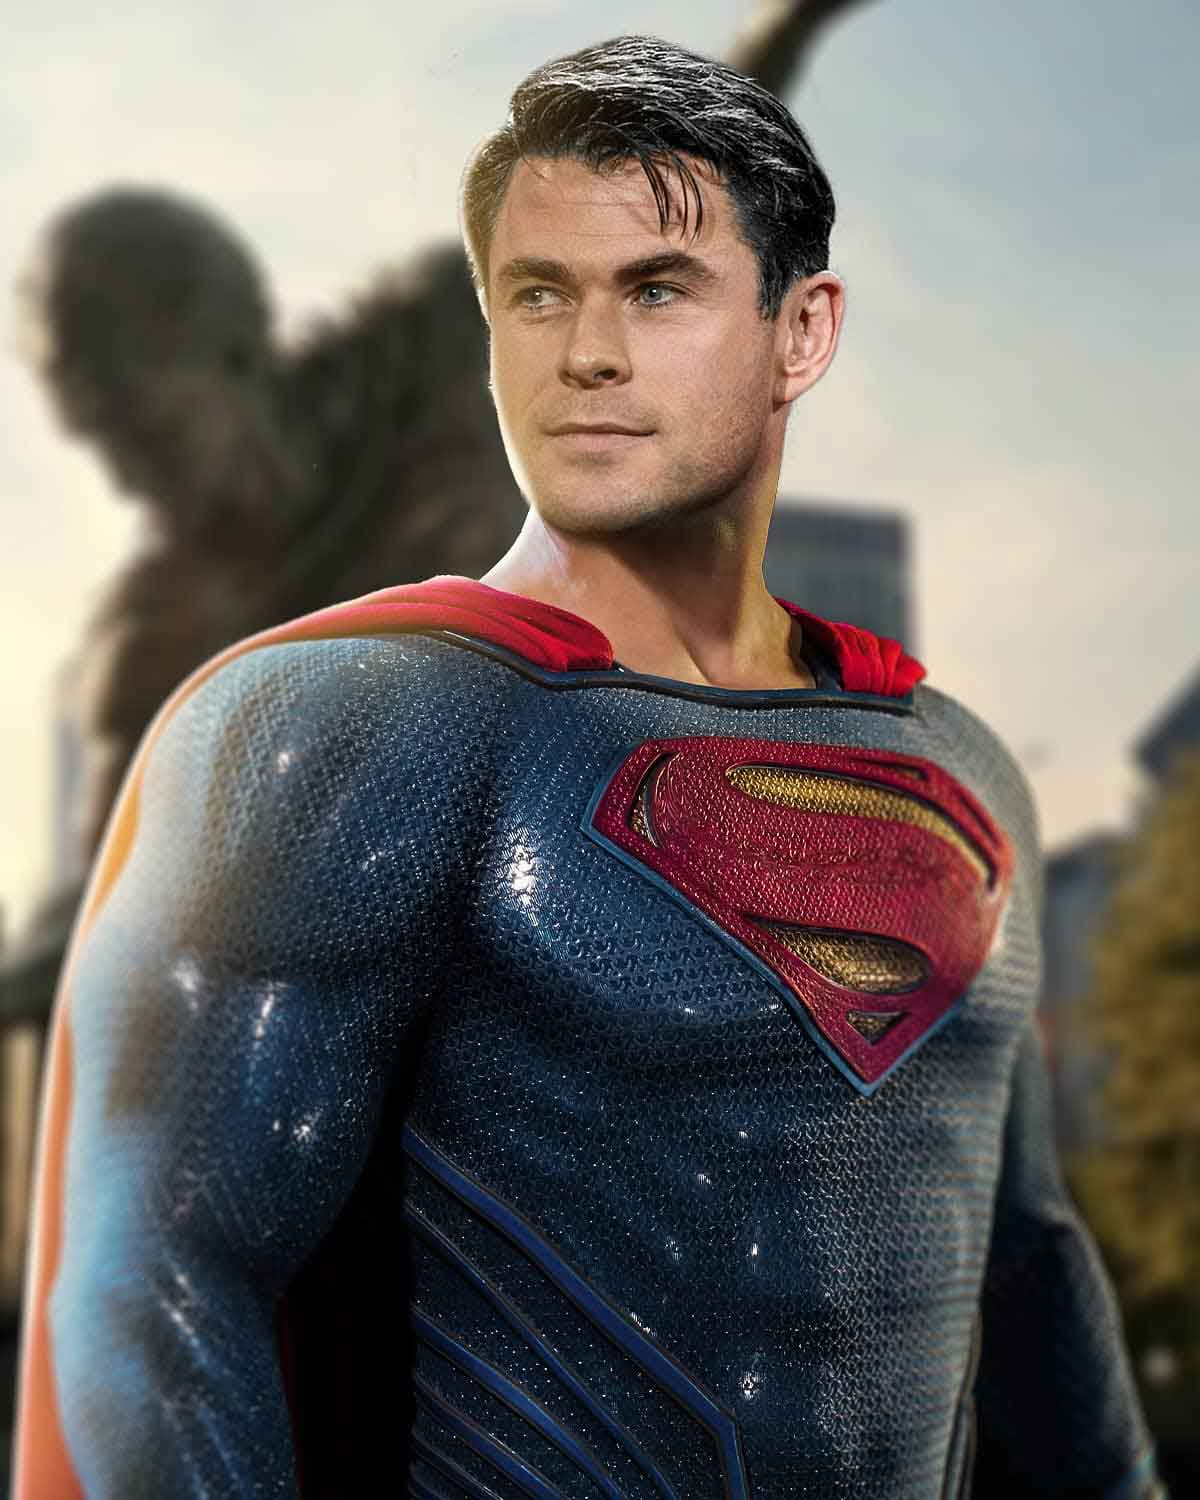 Espectacular Fan Art de Chris Hemsworth como Superman